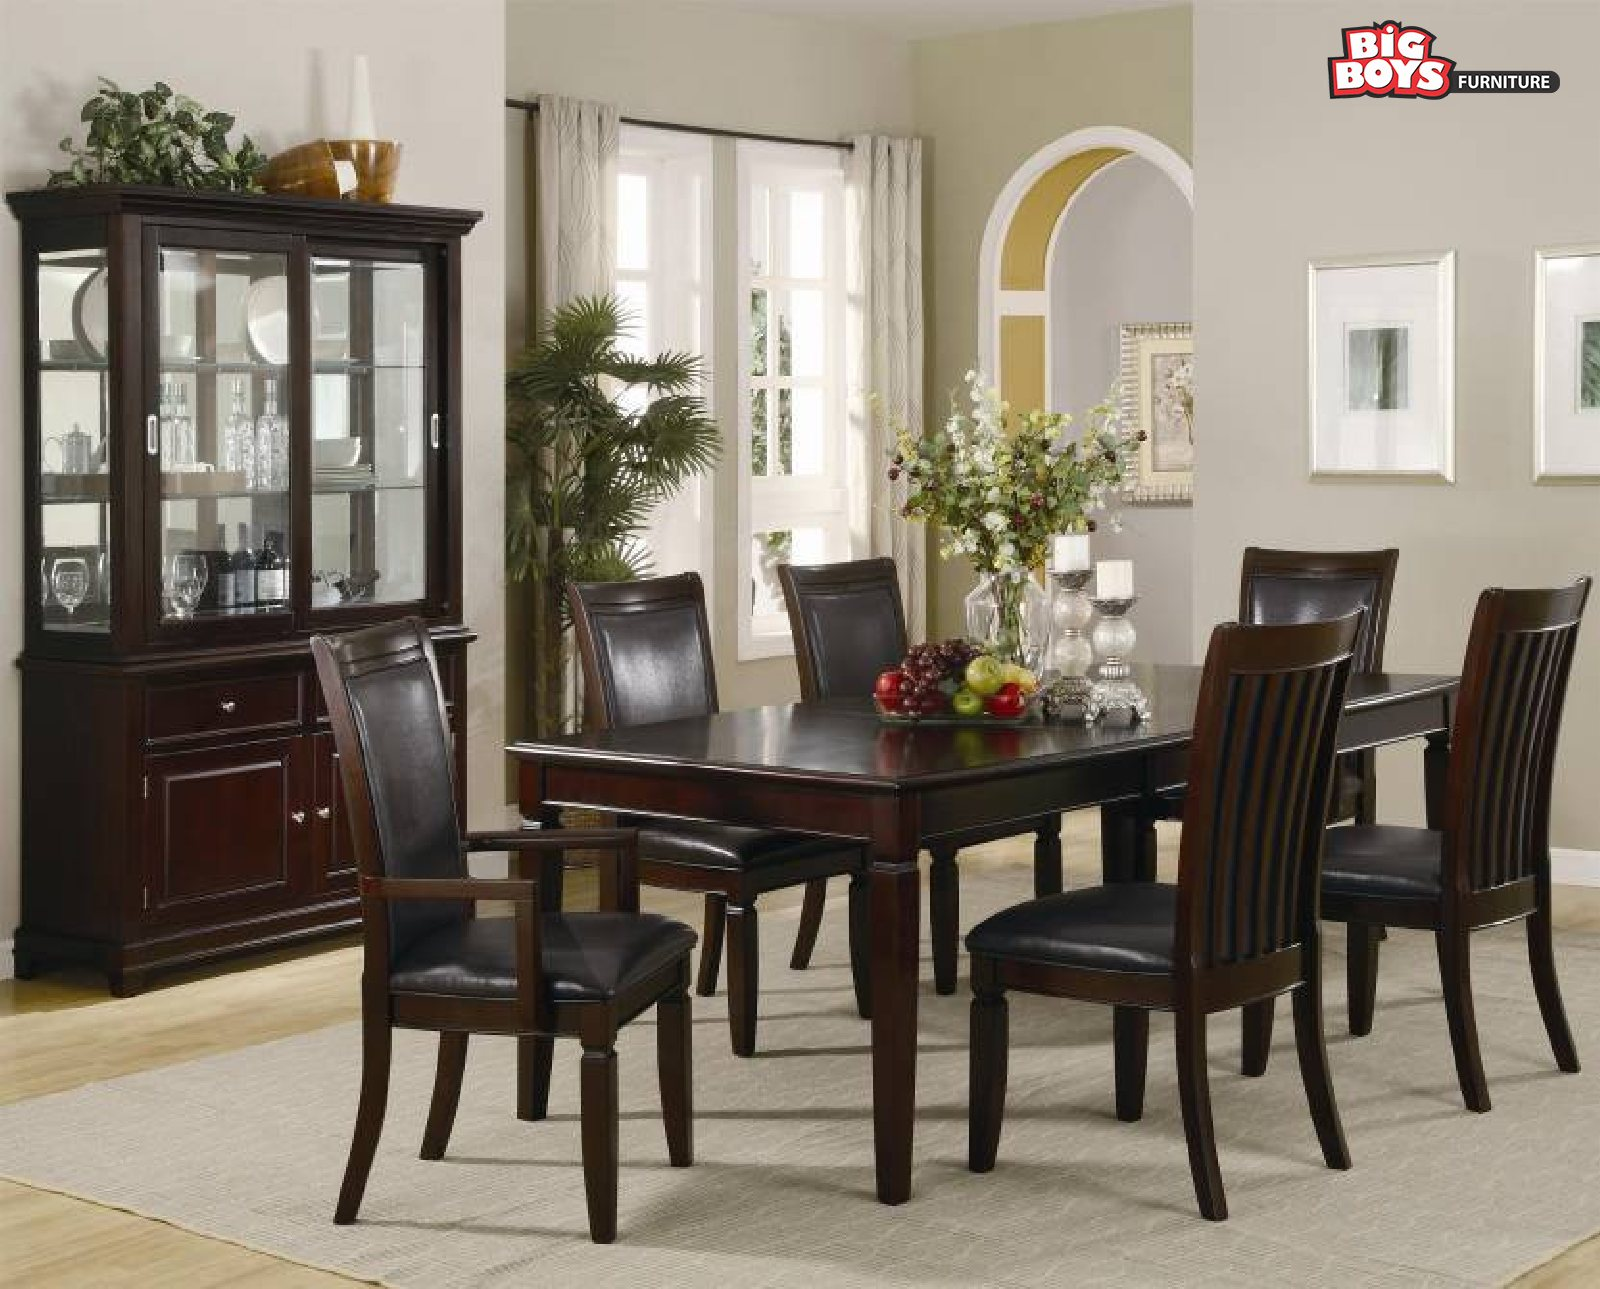 Best deals on dining sets